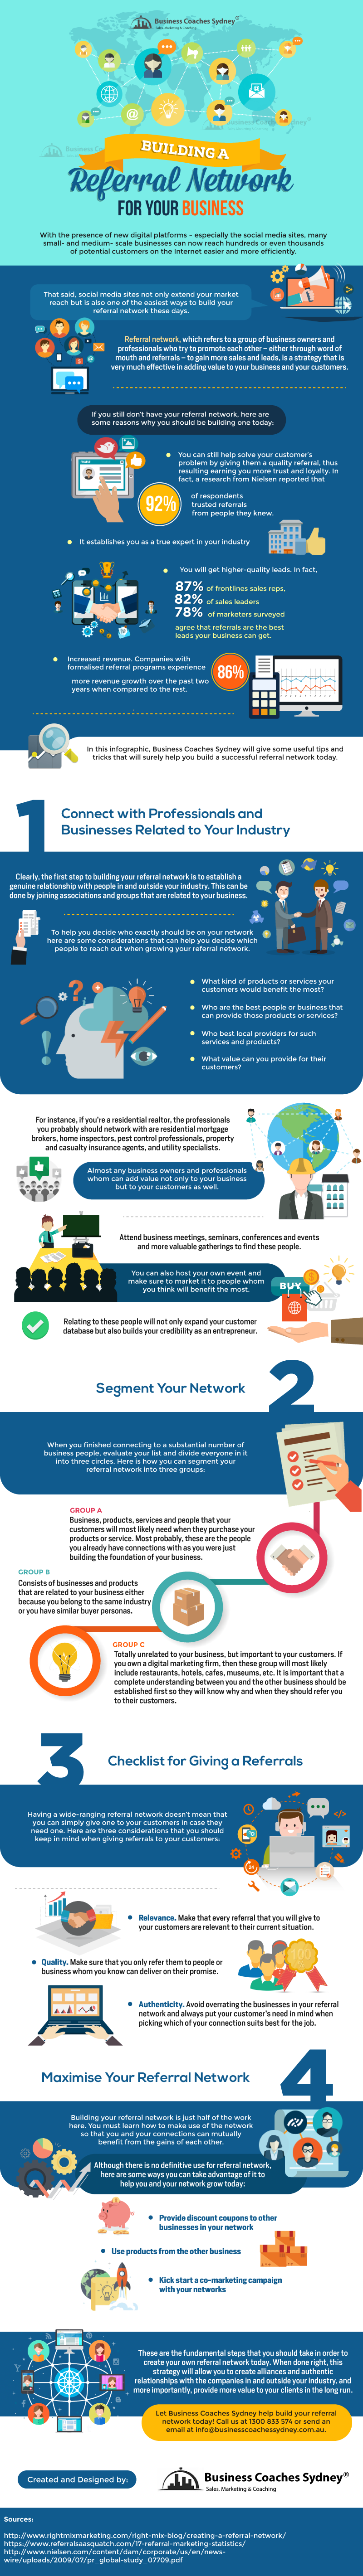 Building a Referral Network For Your Business